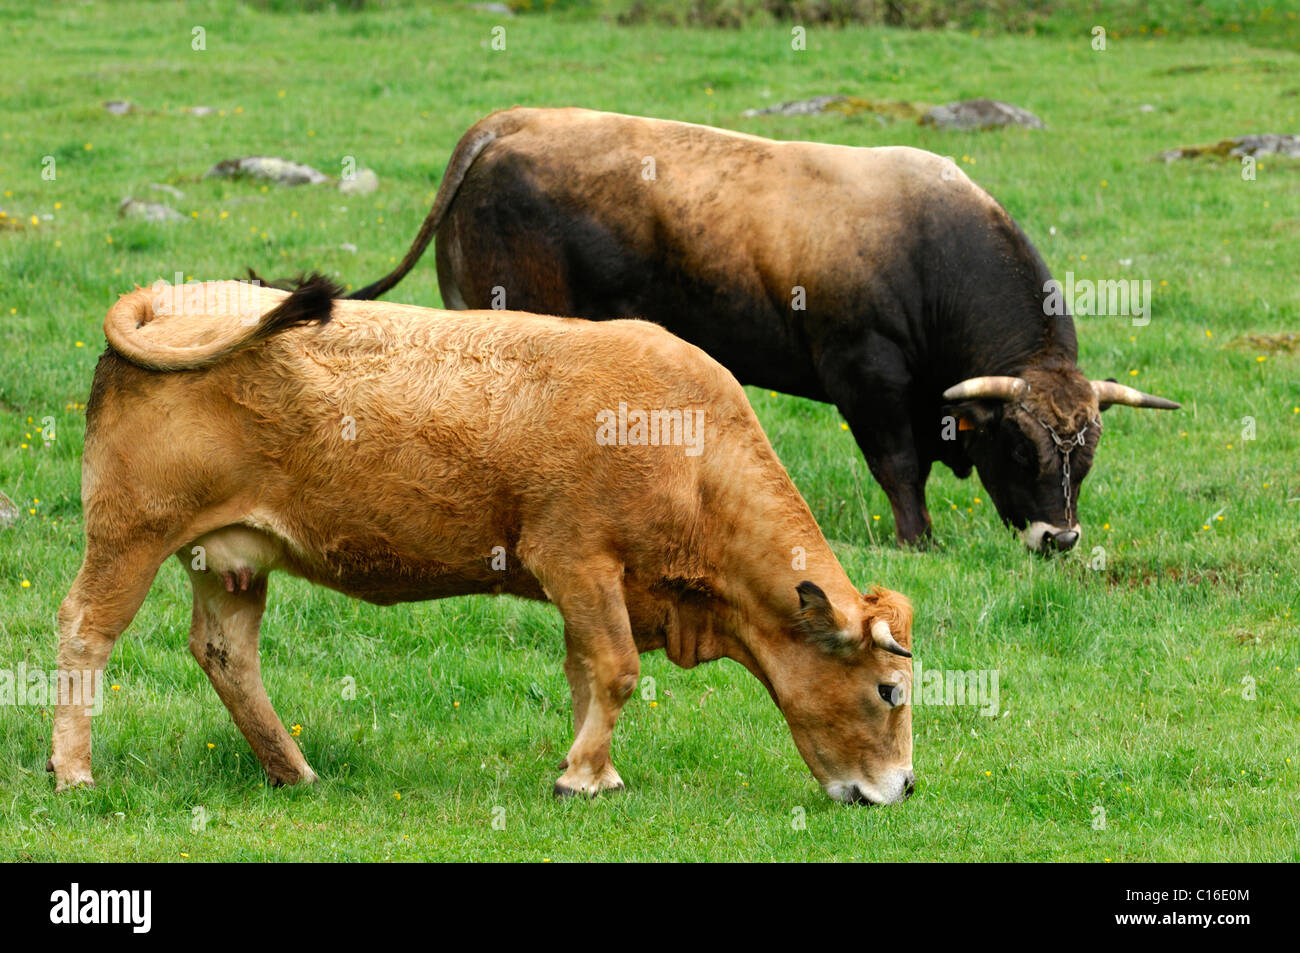 Grazing Aubrac breeding bull and Aubrac heifer, Aubrac Cattle, France, Europe - Stock Image